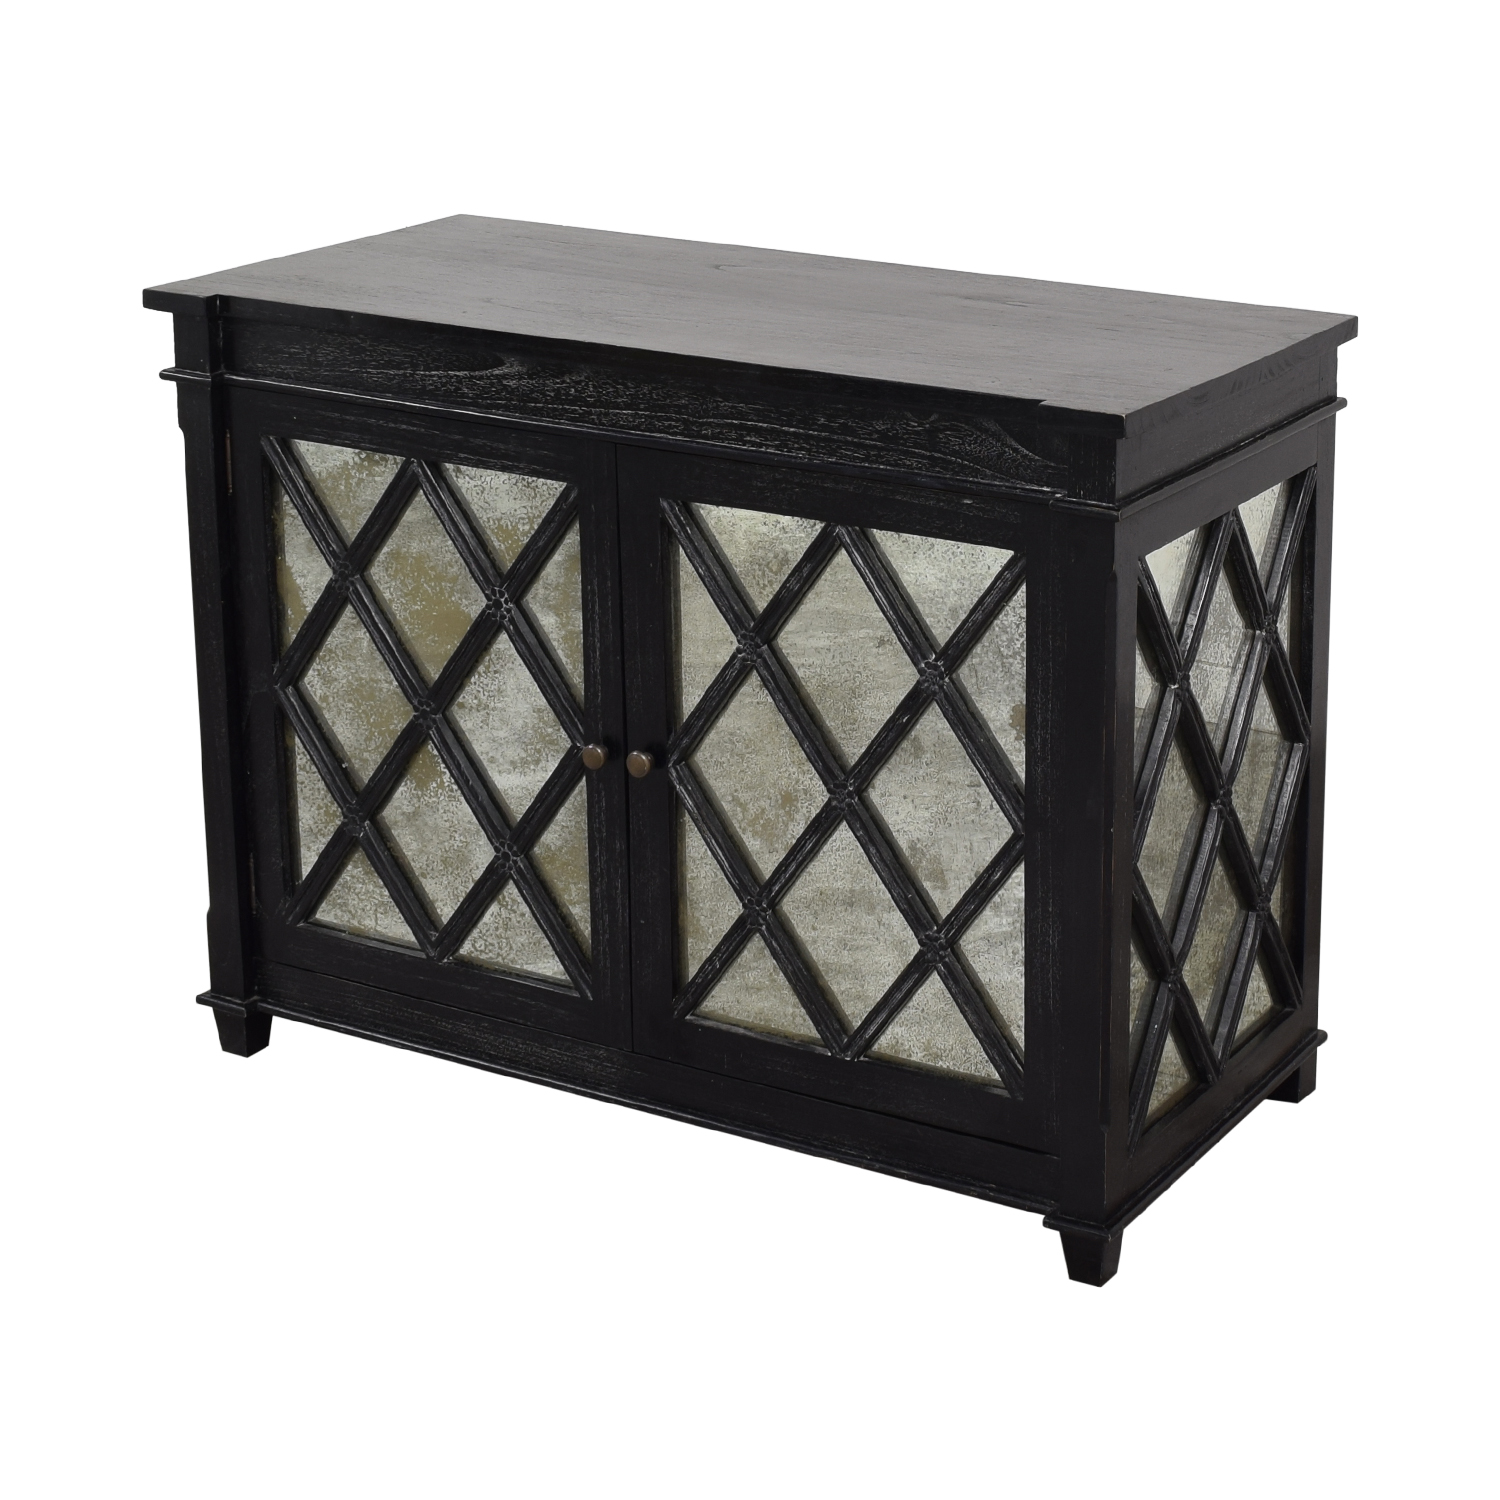 buy Noir Noir Mirrored Cabinet online